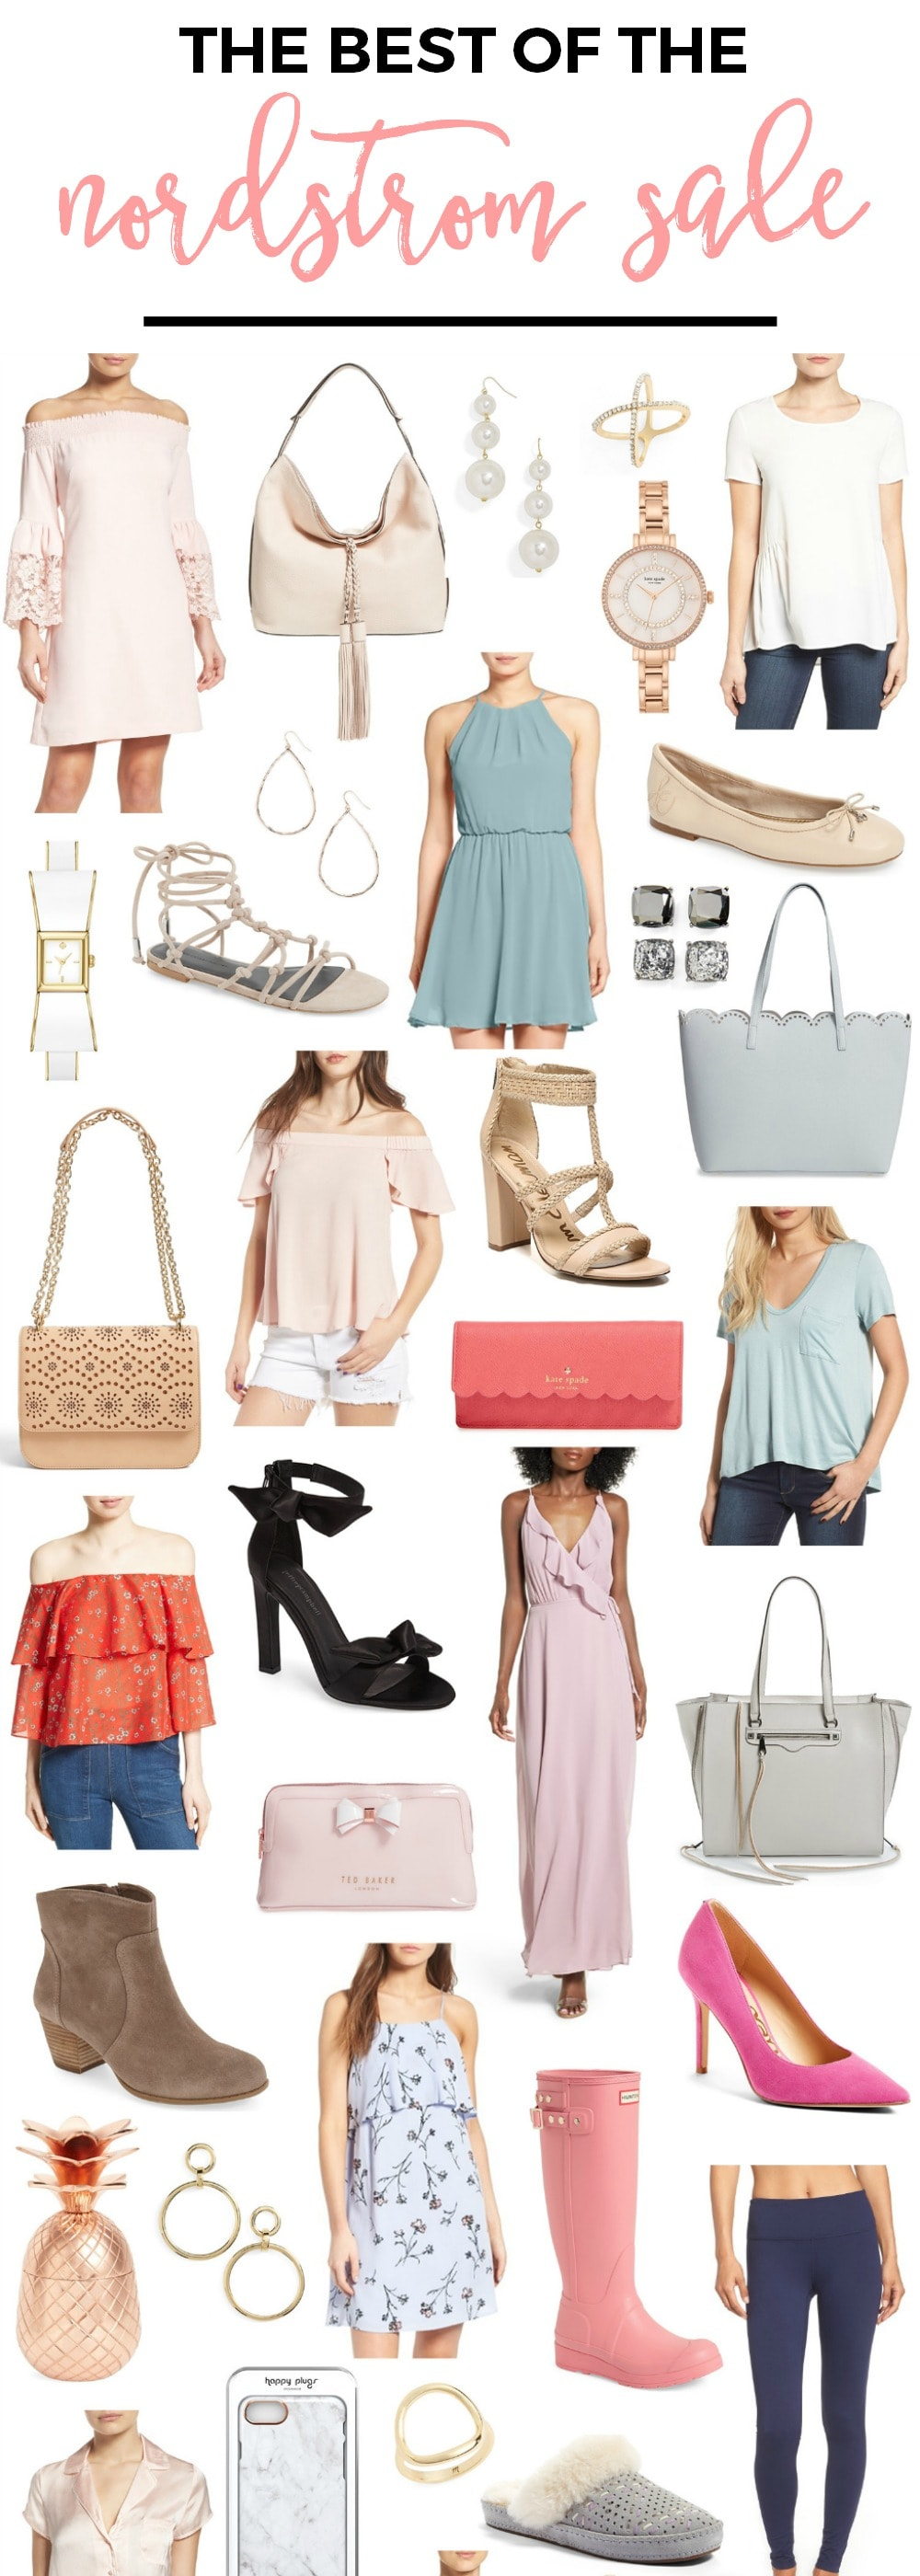 The Best of The Nordstrom Half Yearly Sale | Affordable Summer Clothes and Accessories | Best Memorial Day Weekend Sales | Fashion Blogger Ashley Brooke Nicholas